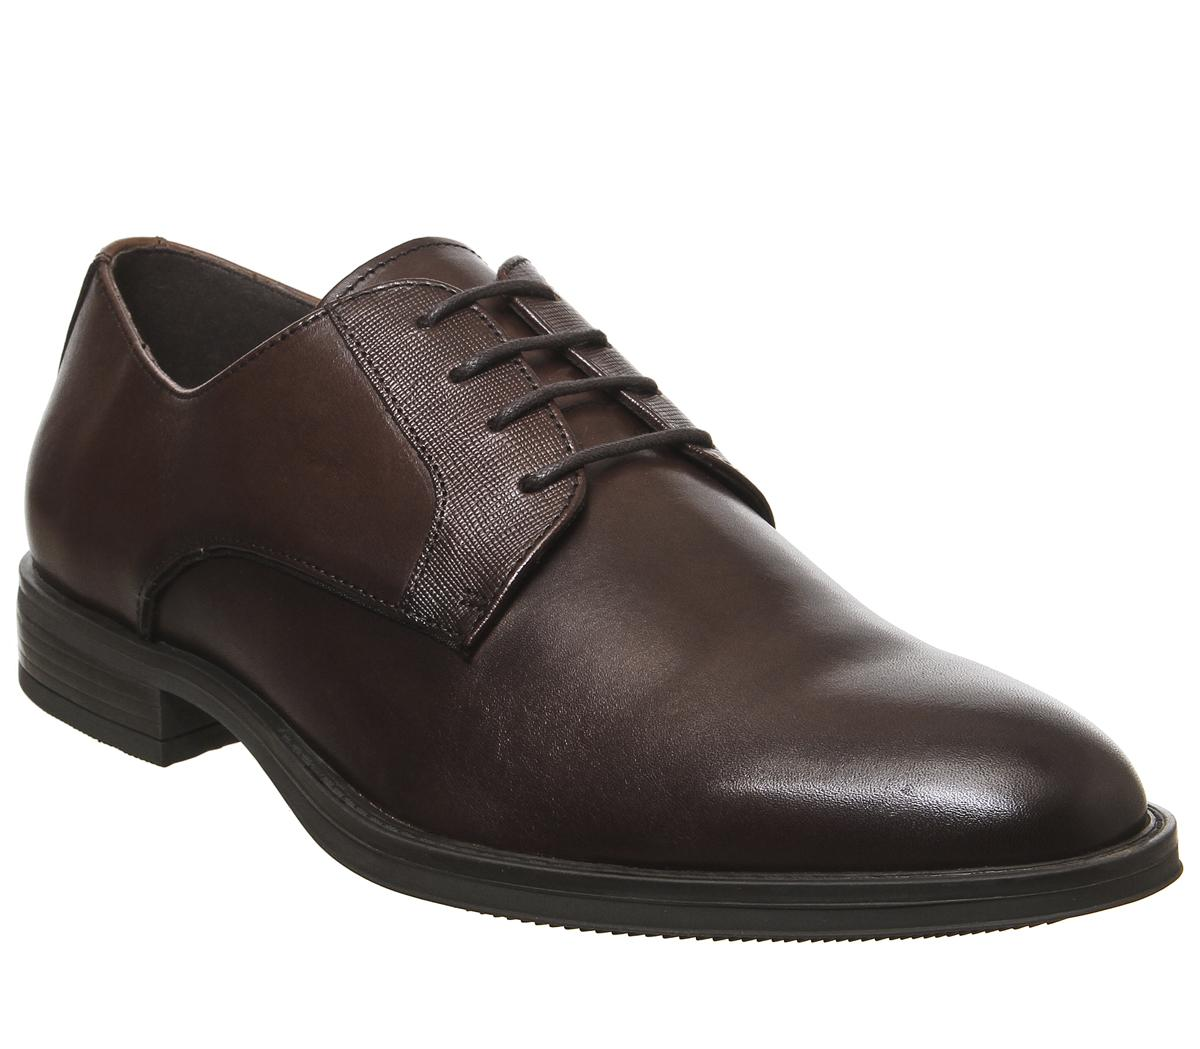 Marker Gibson Smart Shoes